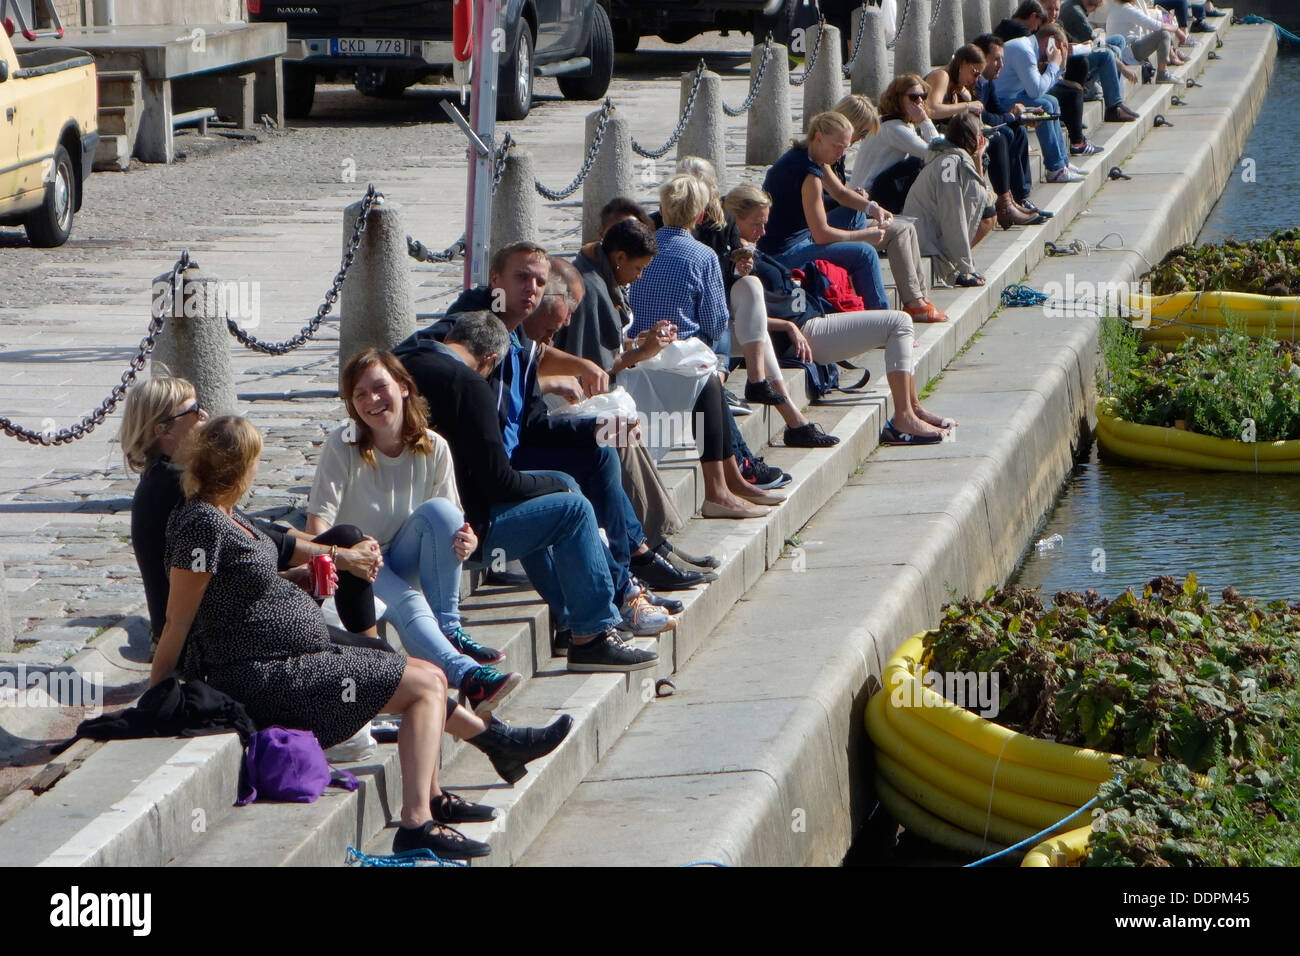 City Dwellers People relaxing on river quay on a regular working day during lunchtime. Rosenlund, Gothenburg, Sweden - Stock Image